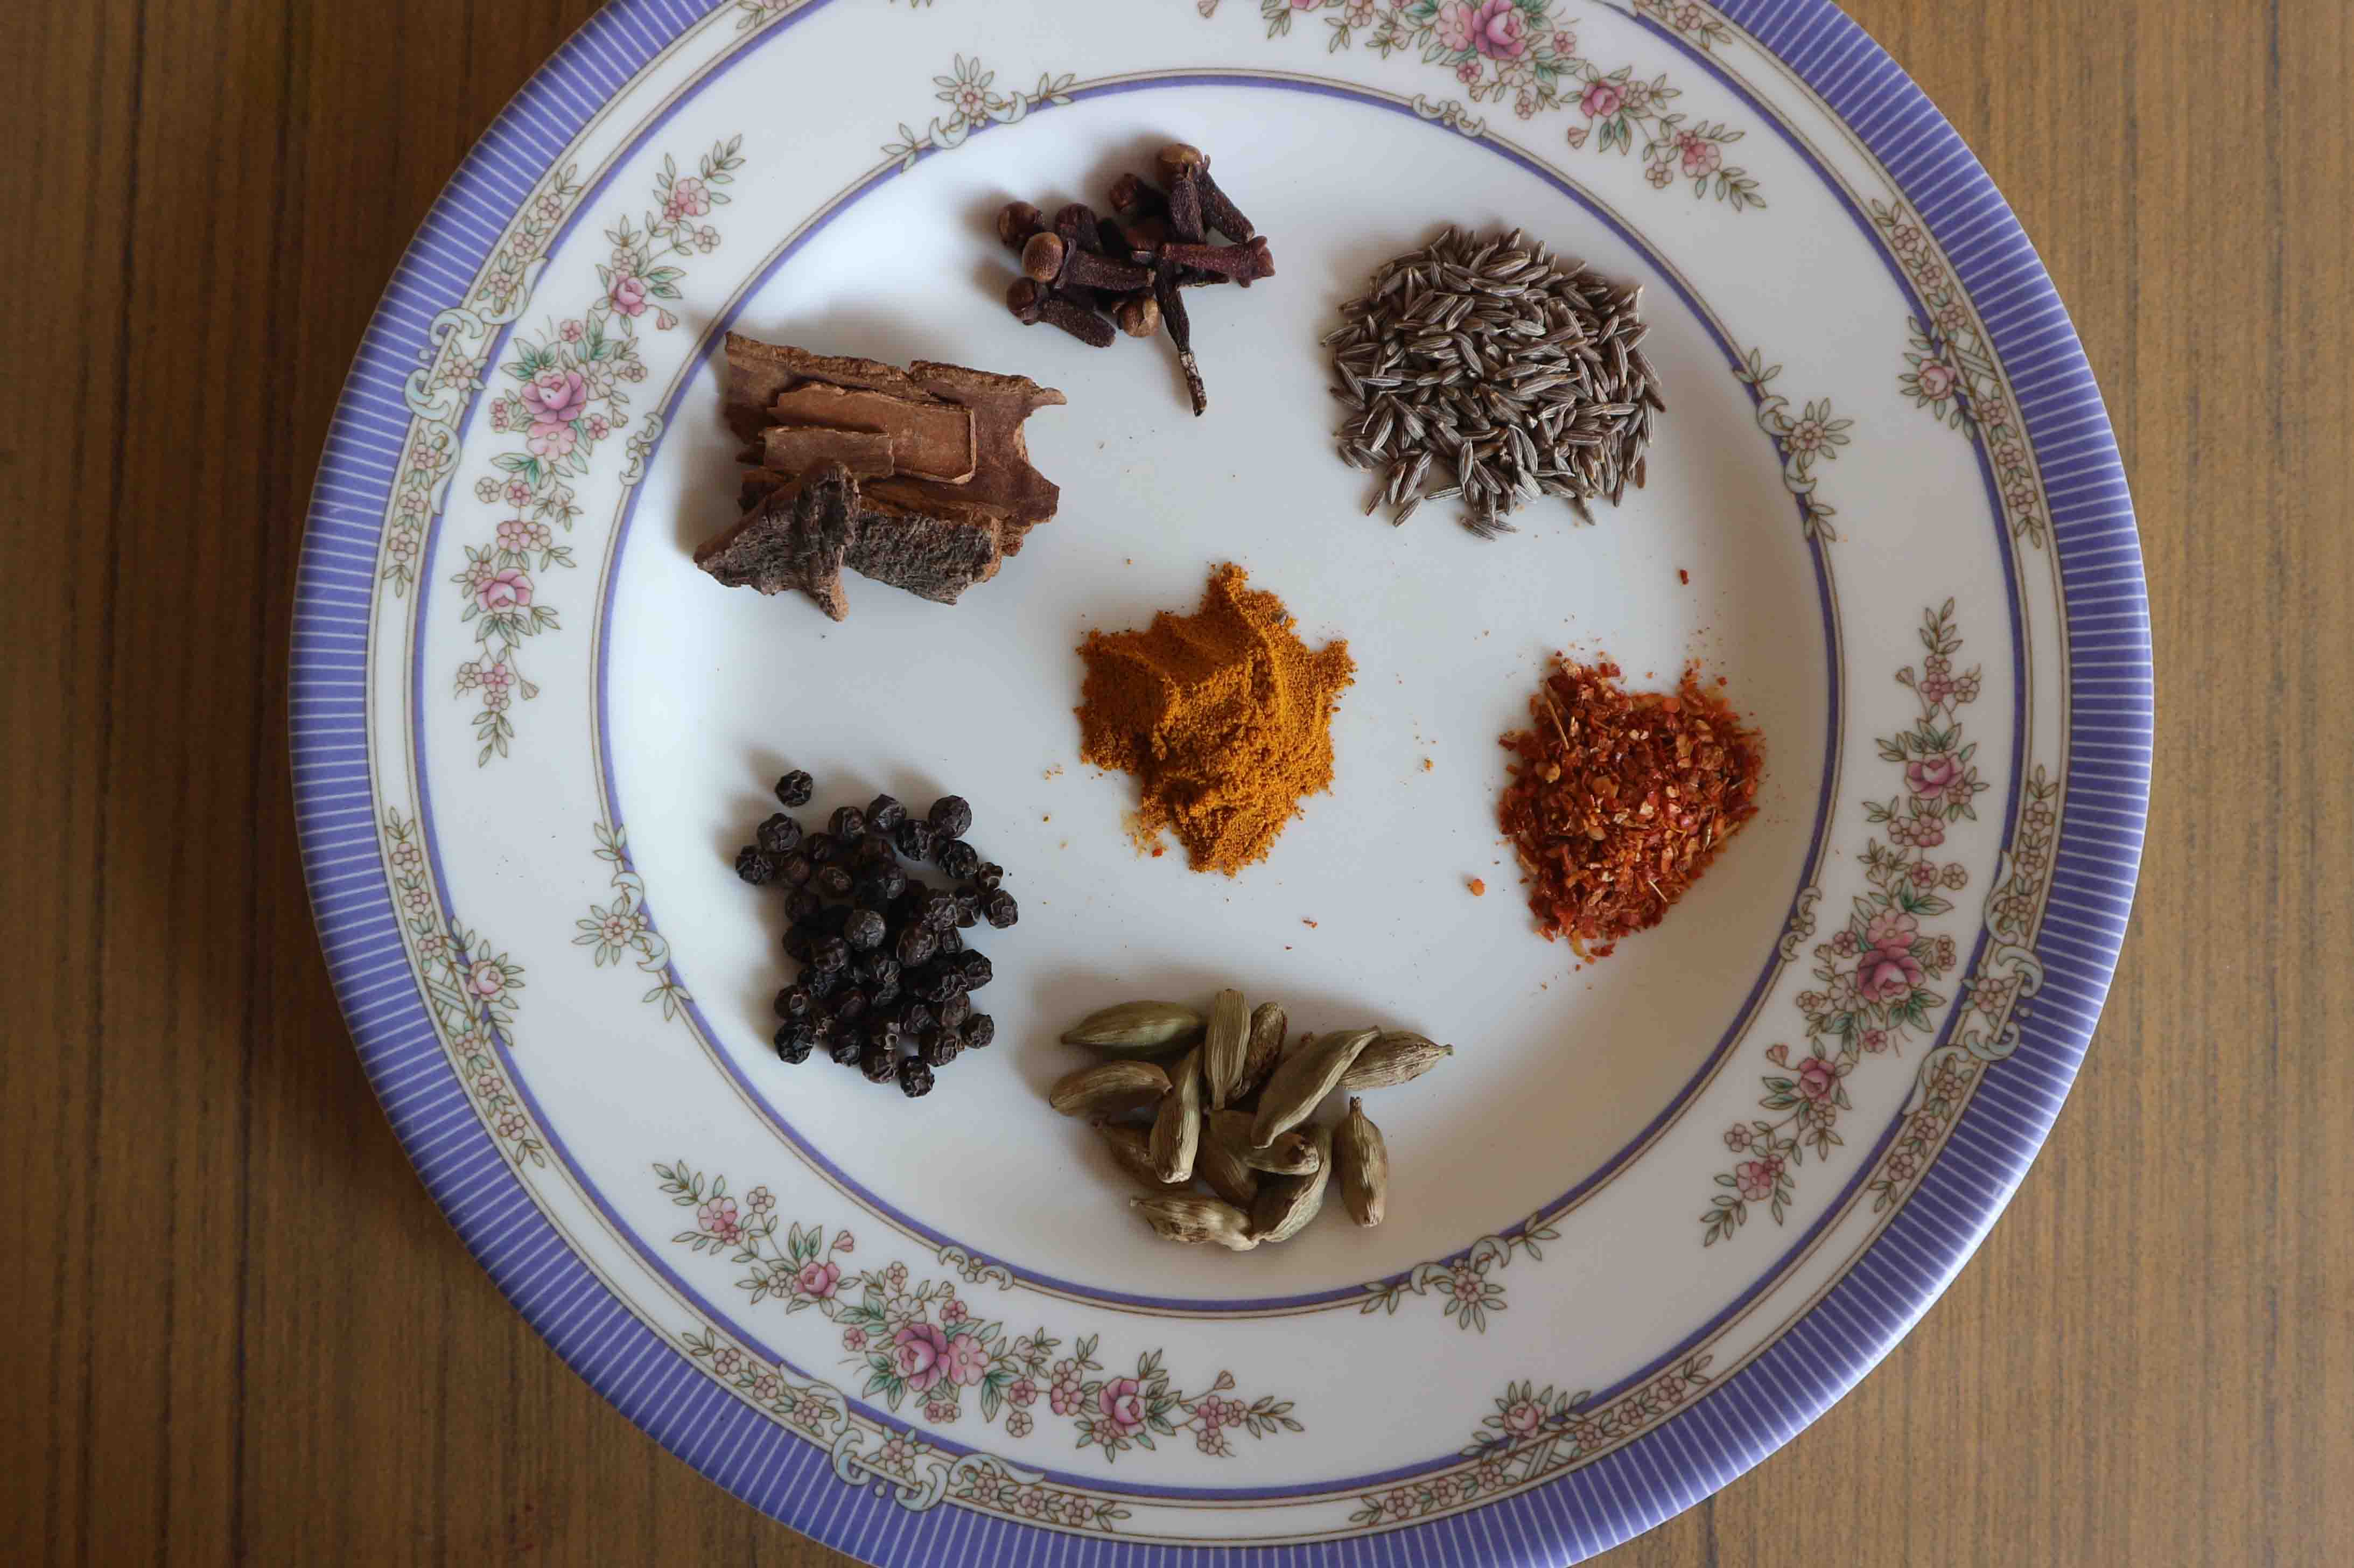 Spices for the curry include cumin, tumeric, cinnamon, cardamom, black pepper, cloves and red chili flakes.